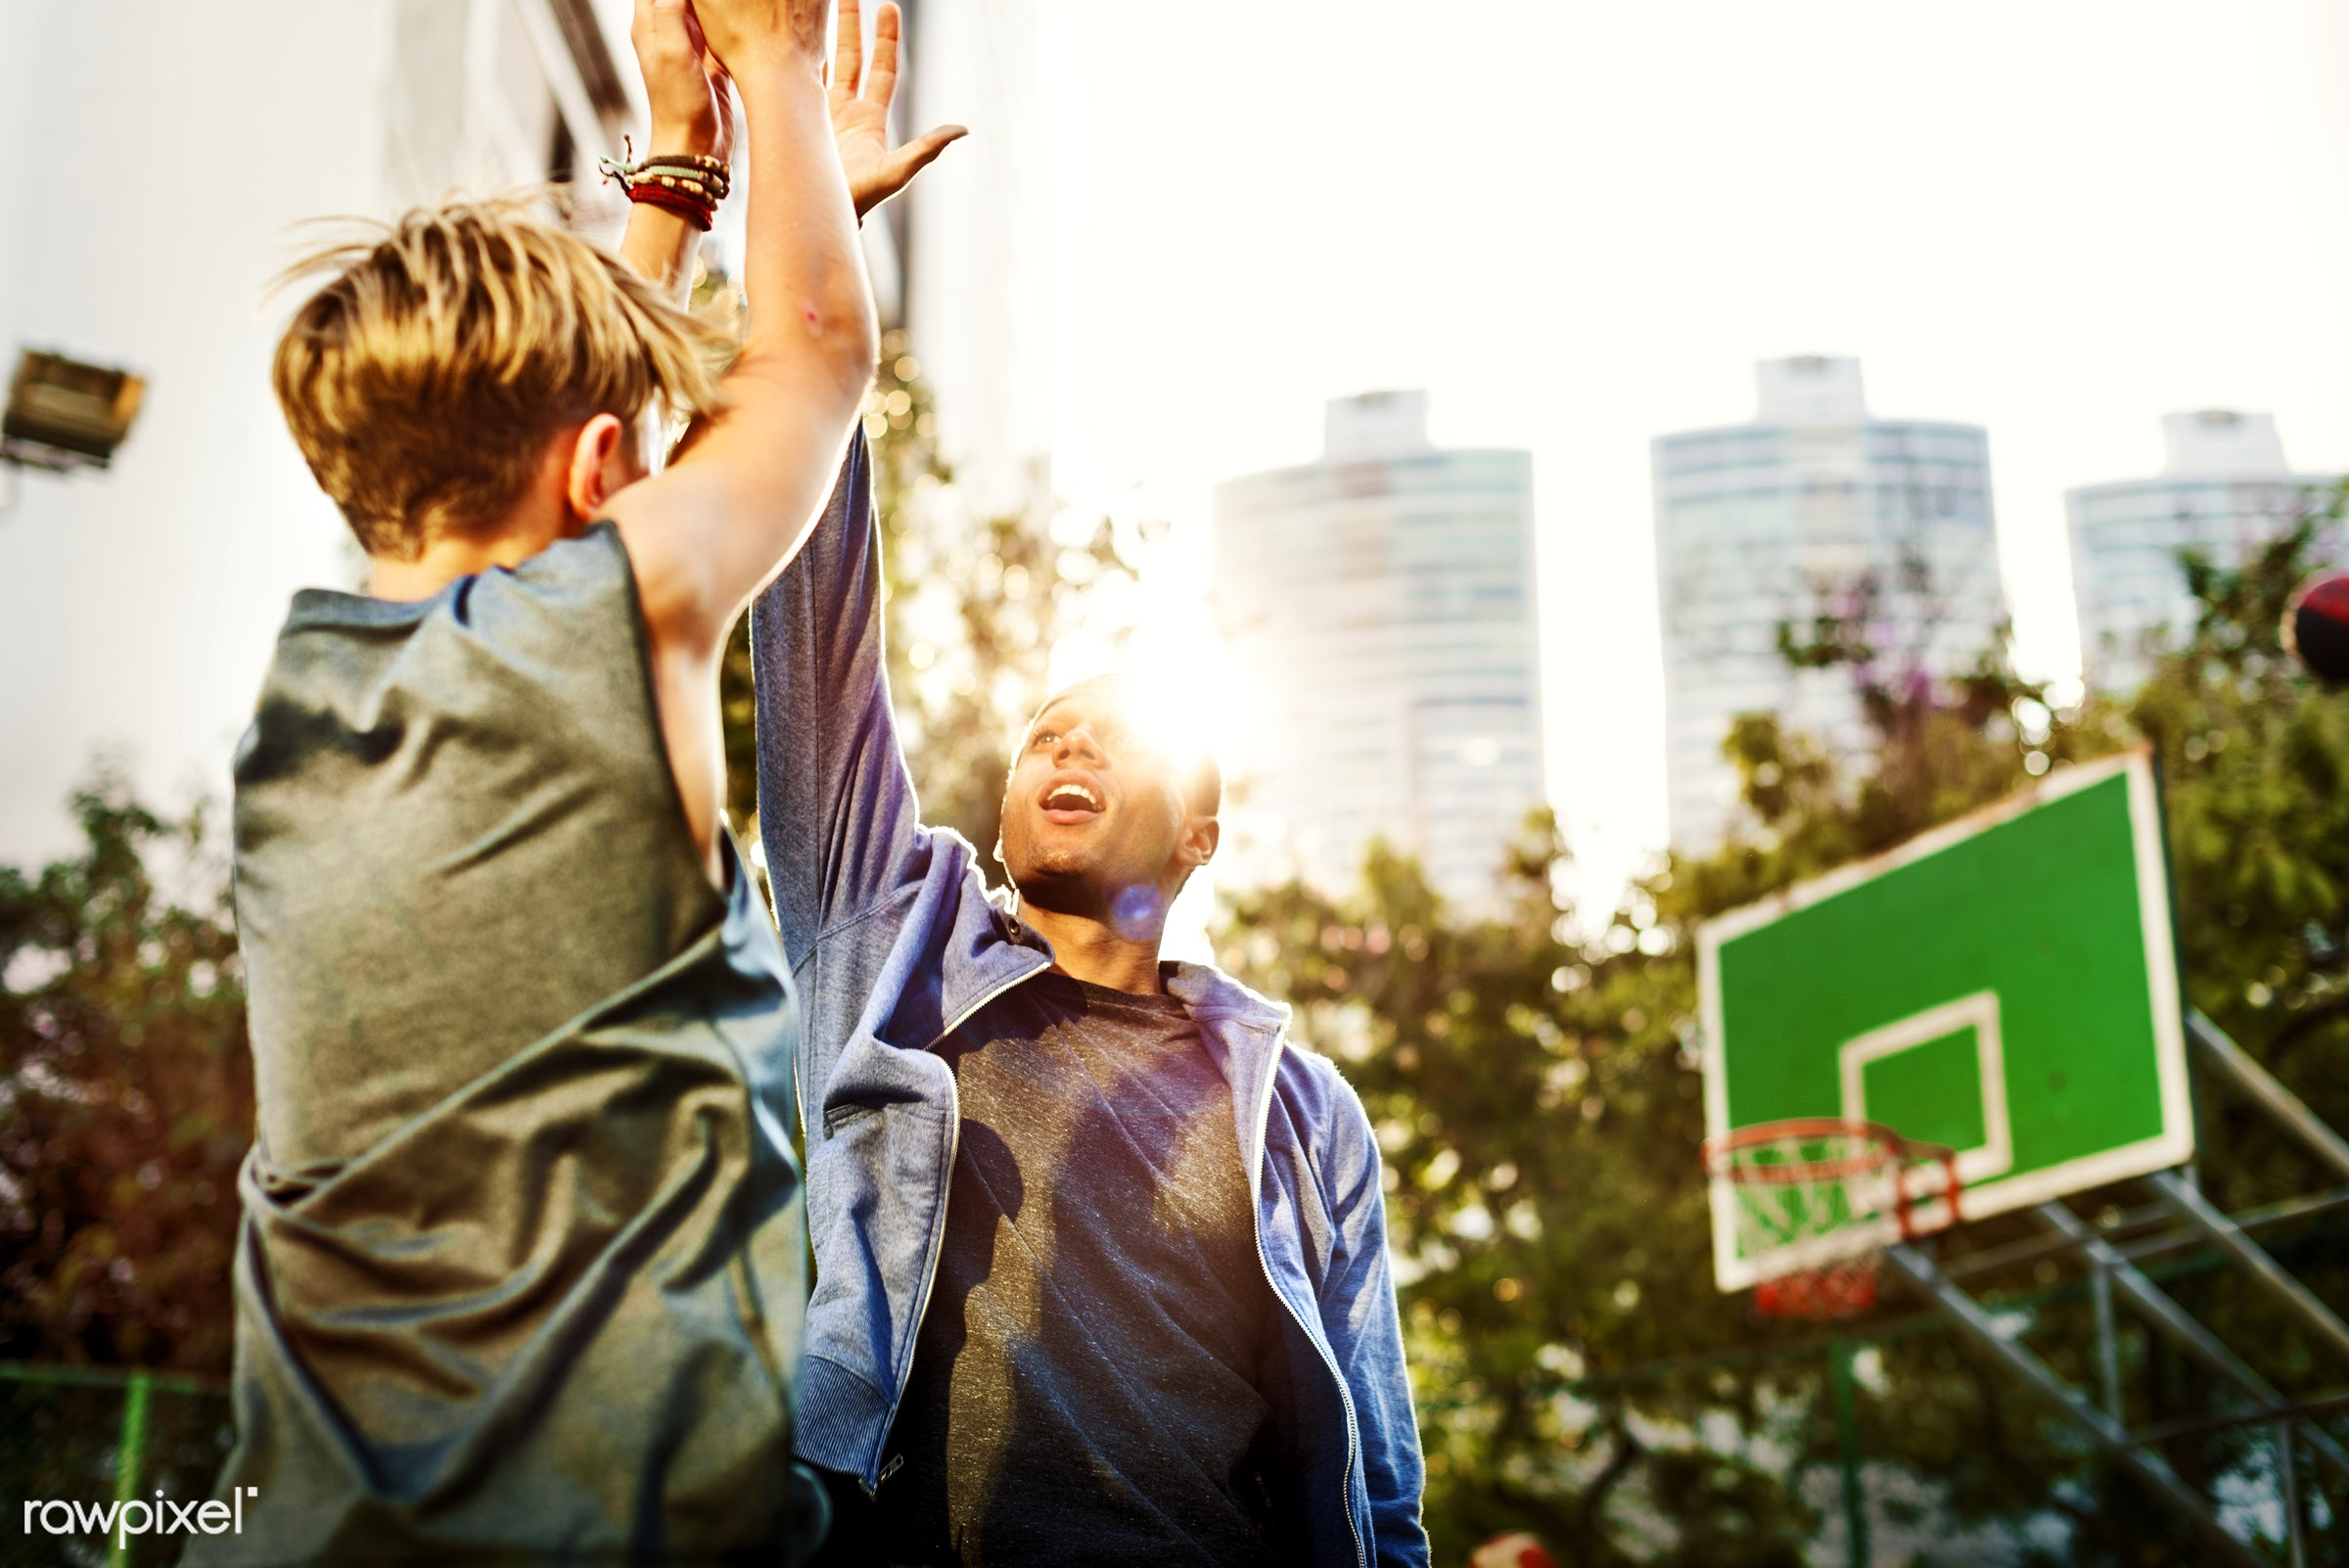 activity, basketball, boy, caucasian, exercise, game, man, play, player, practice, sport, strength, teen, young, youth,...